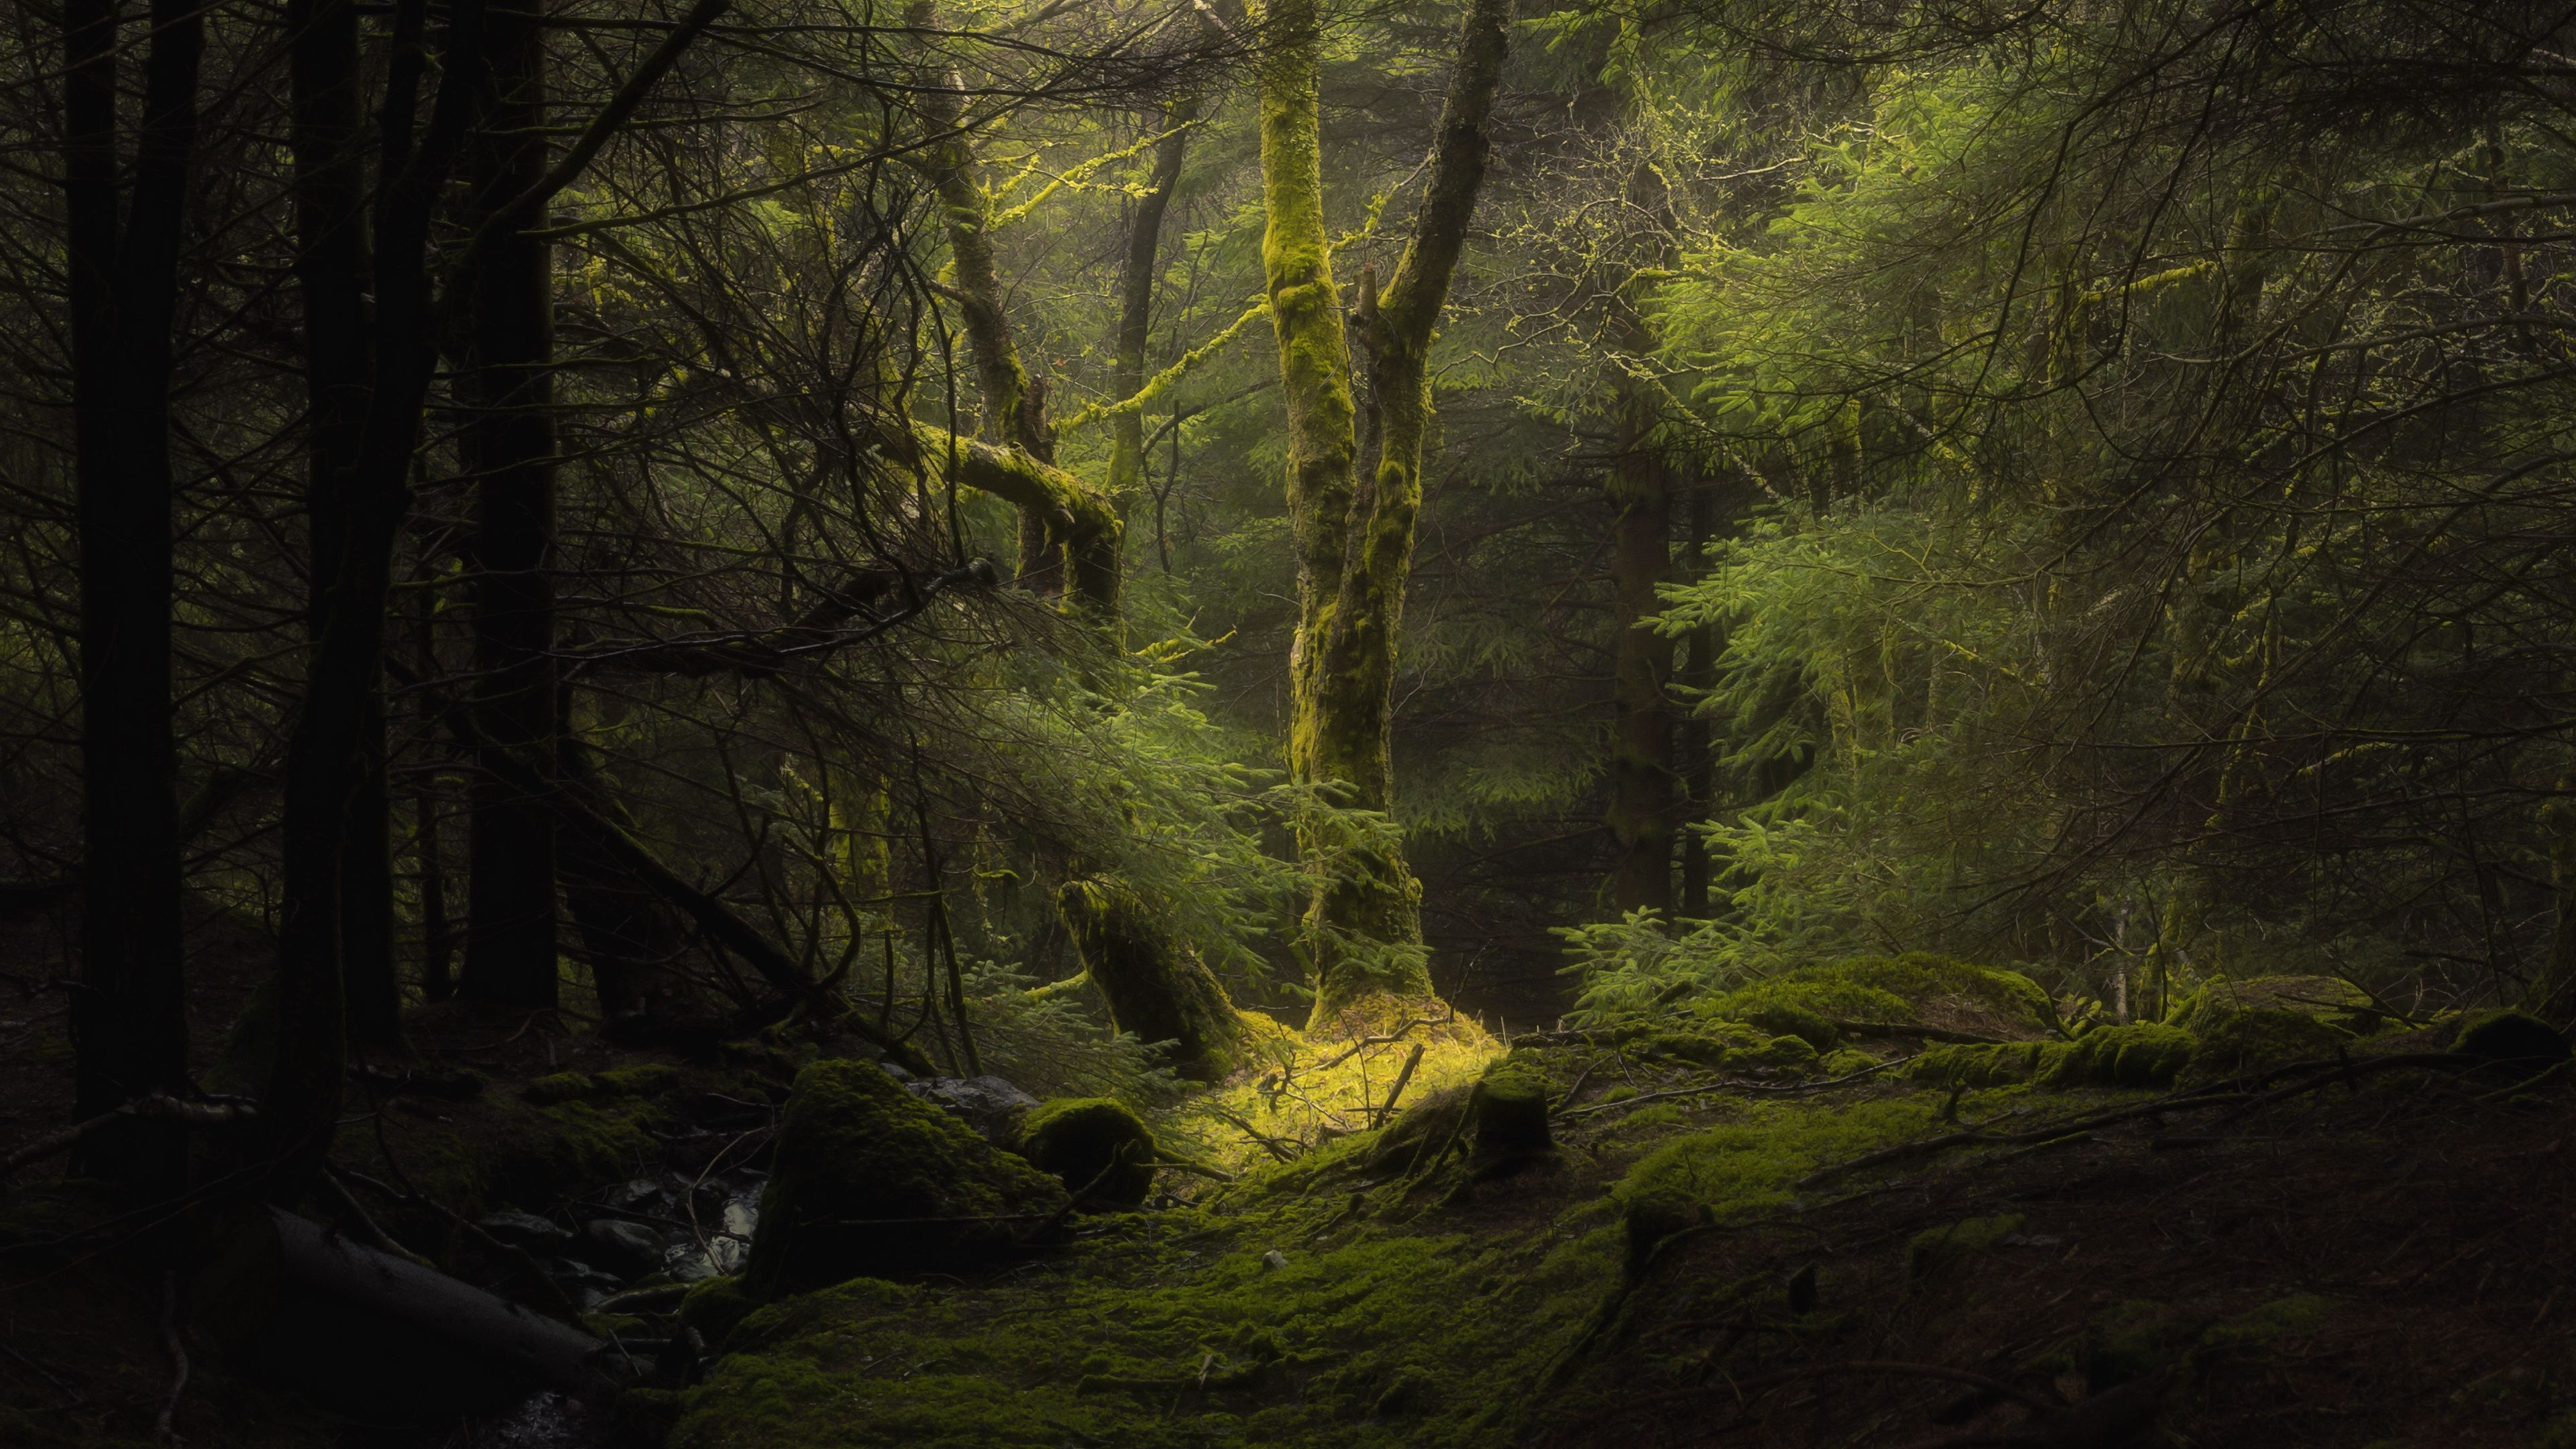 Pin By Sherri Morgan On Odor 3r R Hd Nature Wallpapers Nature Wallpaper Foggy Forest